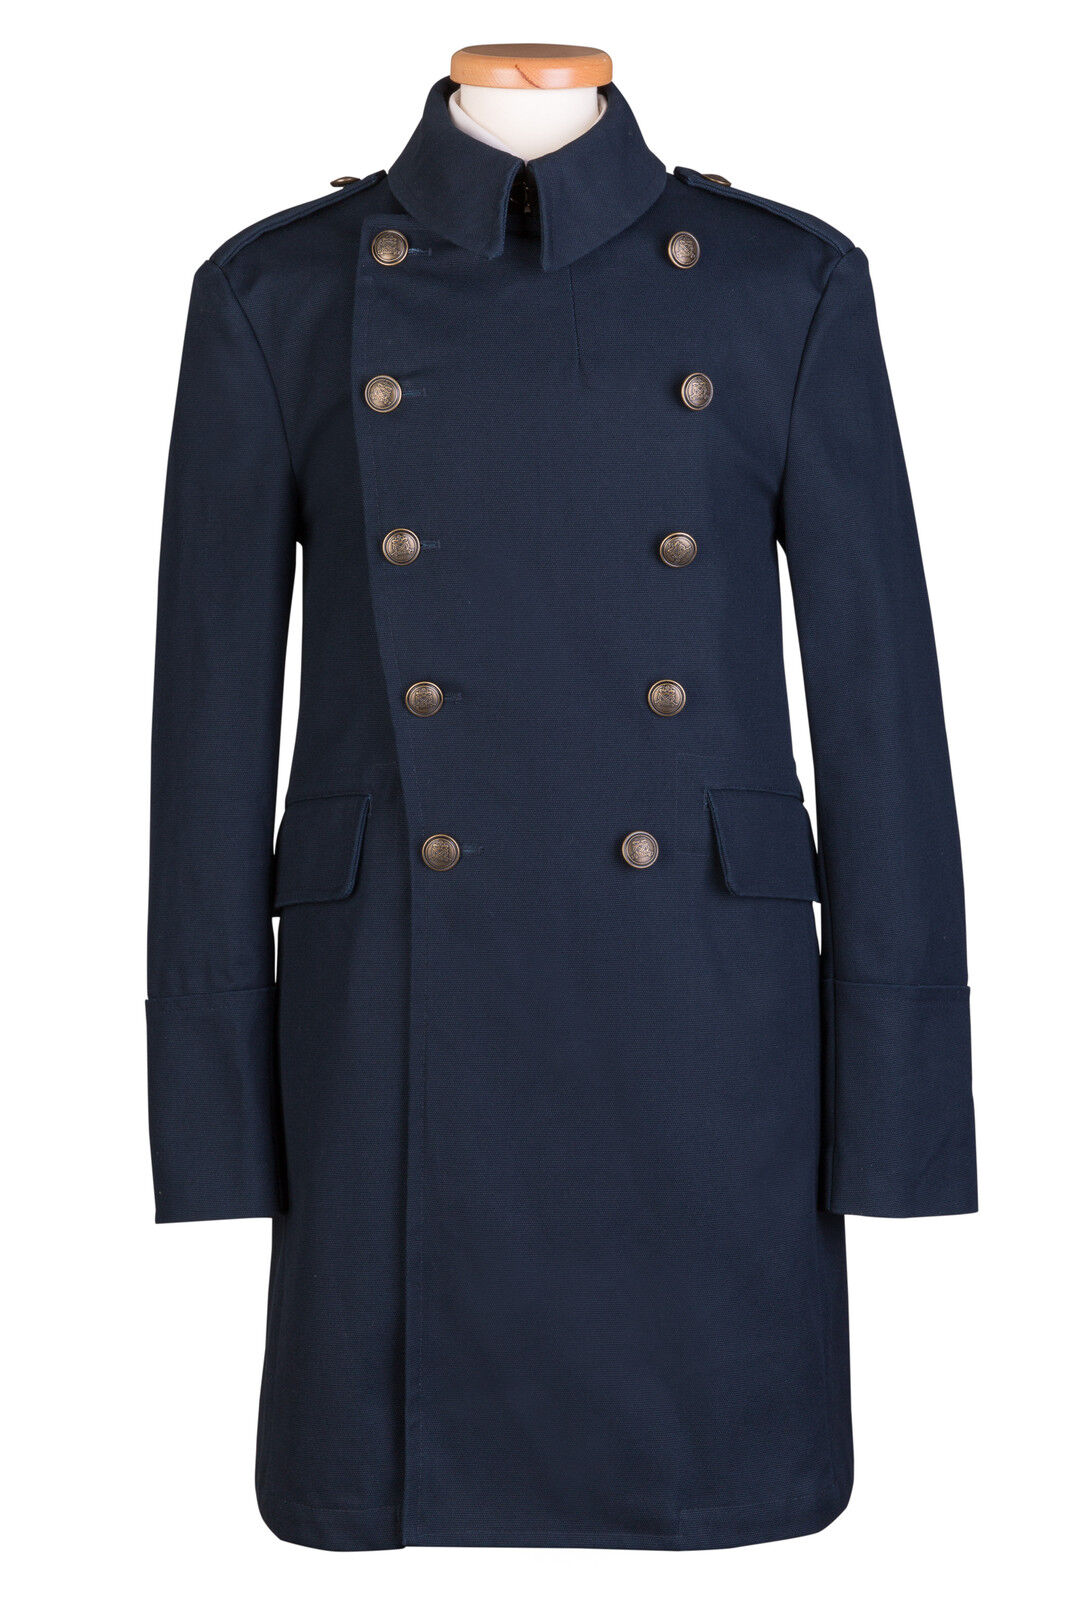 NAVY TRENCH COAT COAT COAT MILITARY BRASS BUTTONS COTTON | Vielfältiges neues Design  701ff2